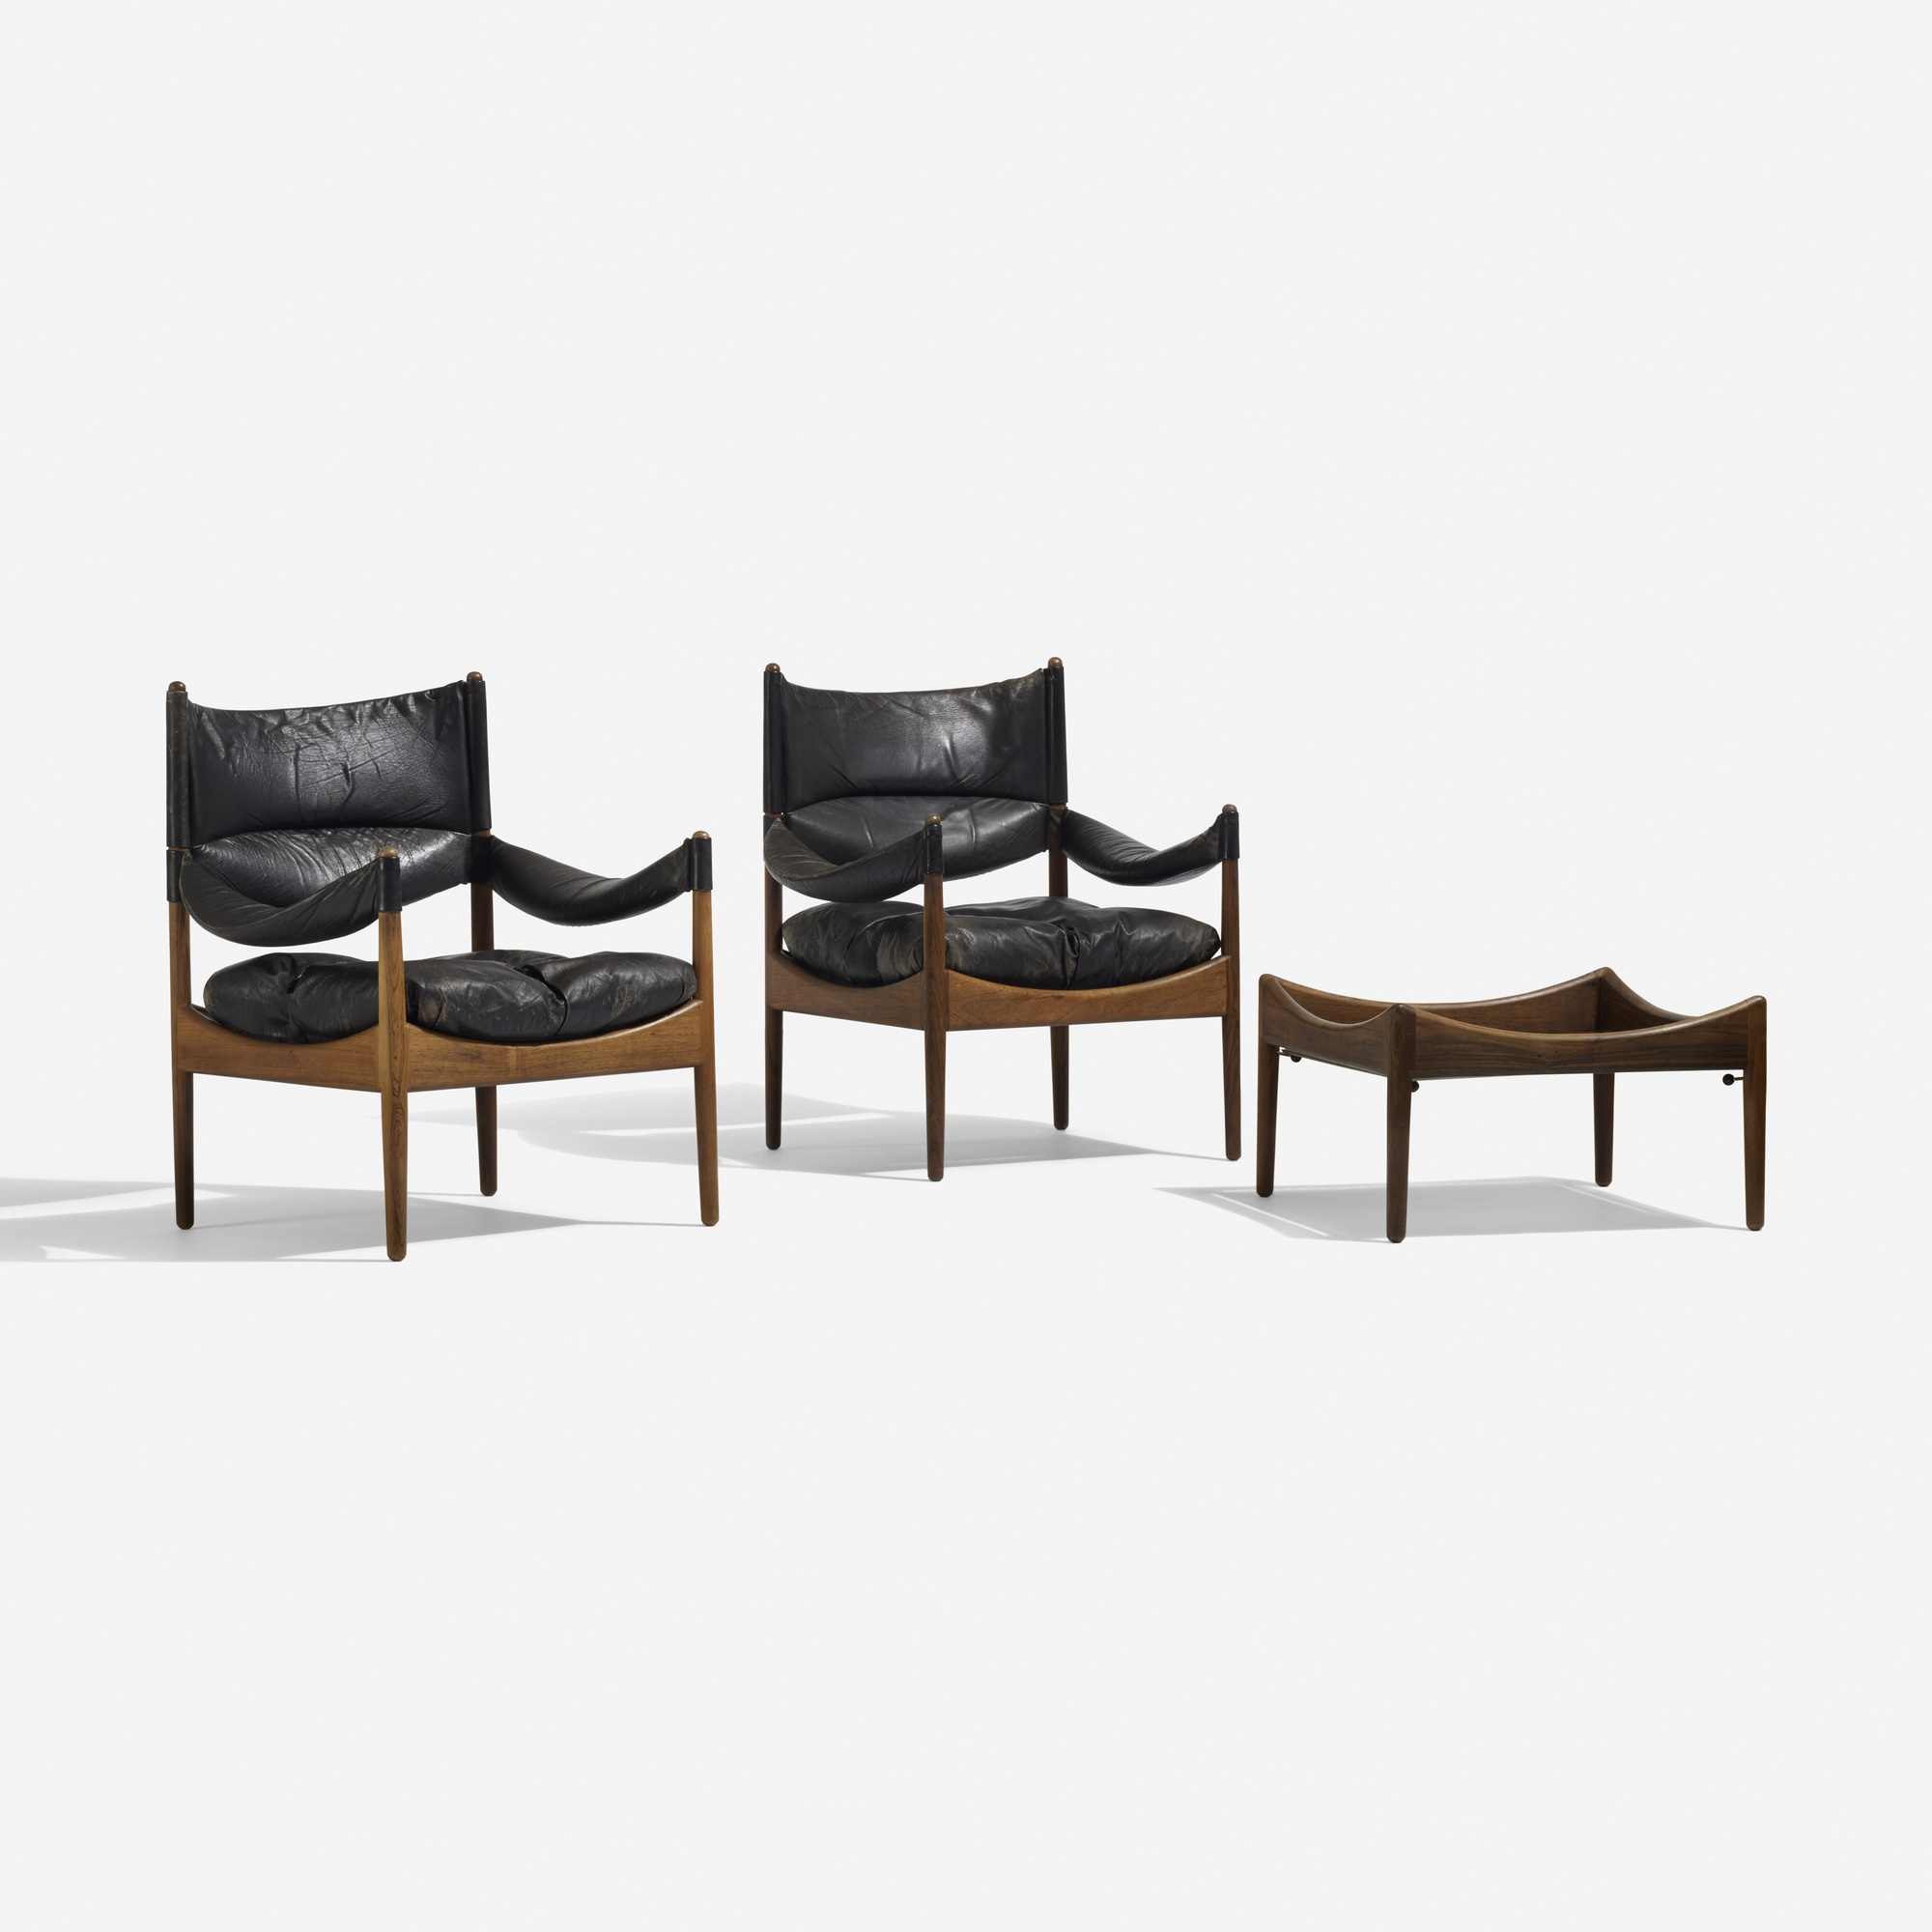 163: Kristian Vedel / pair of Modus lounge chairs and occasional table (1 of 4)